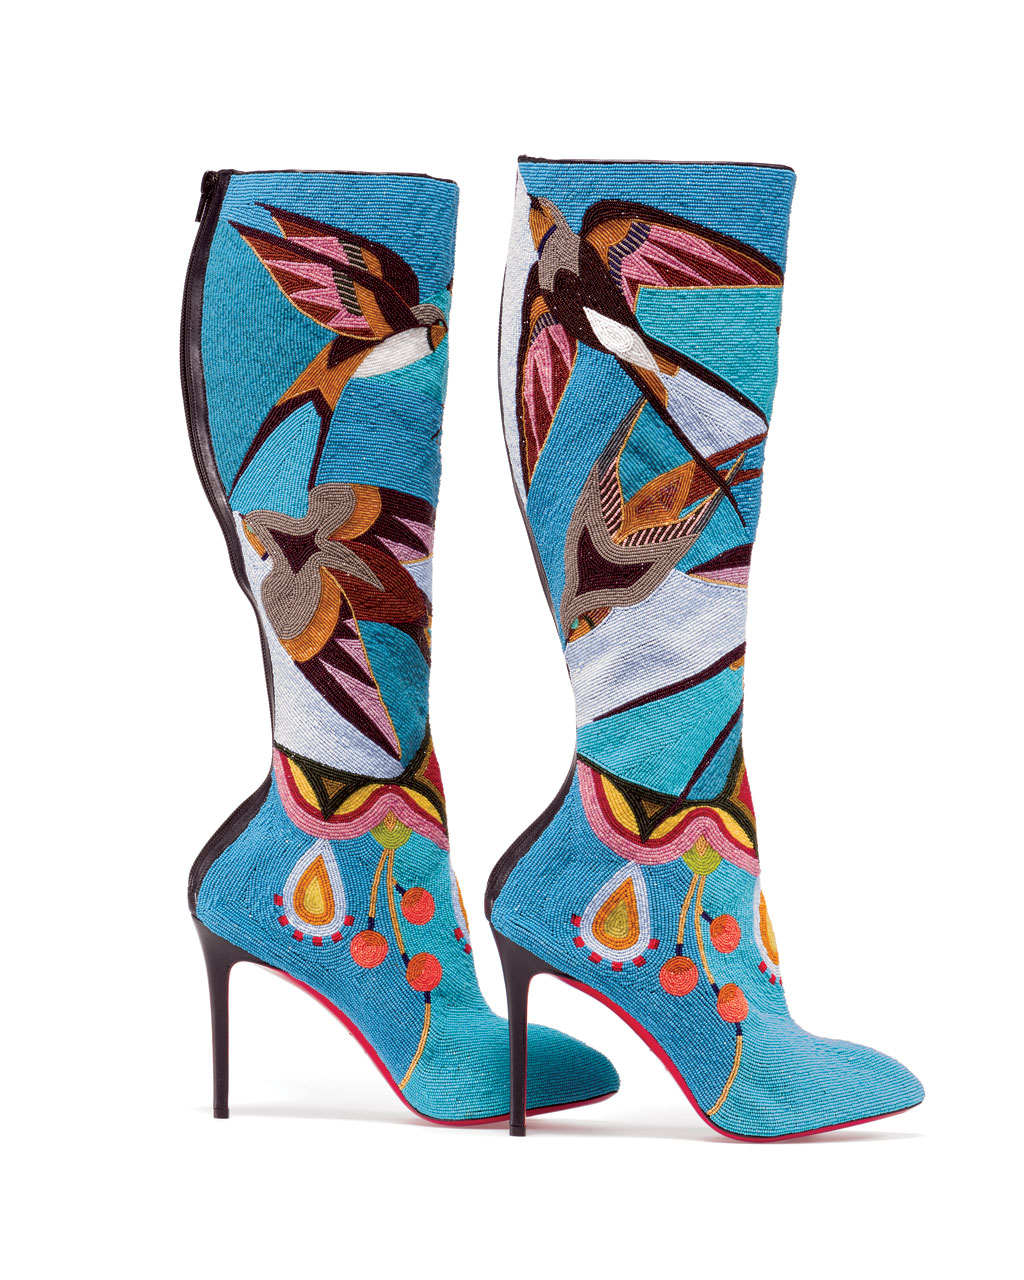 CHRISTIAN LOUBOUTIN BOOTS by Jamie Okuma (Luiseño/Shoshone-Bannock) with antique glass beads, 2013-14.  Photograph by Walter Silver; courtesy of Peabody Essex Museum.